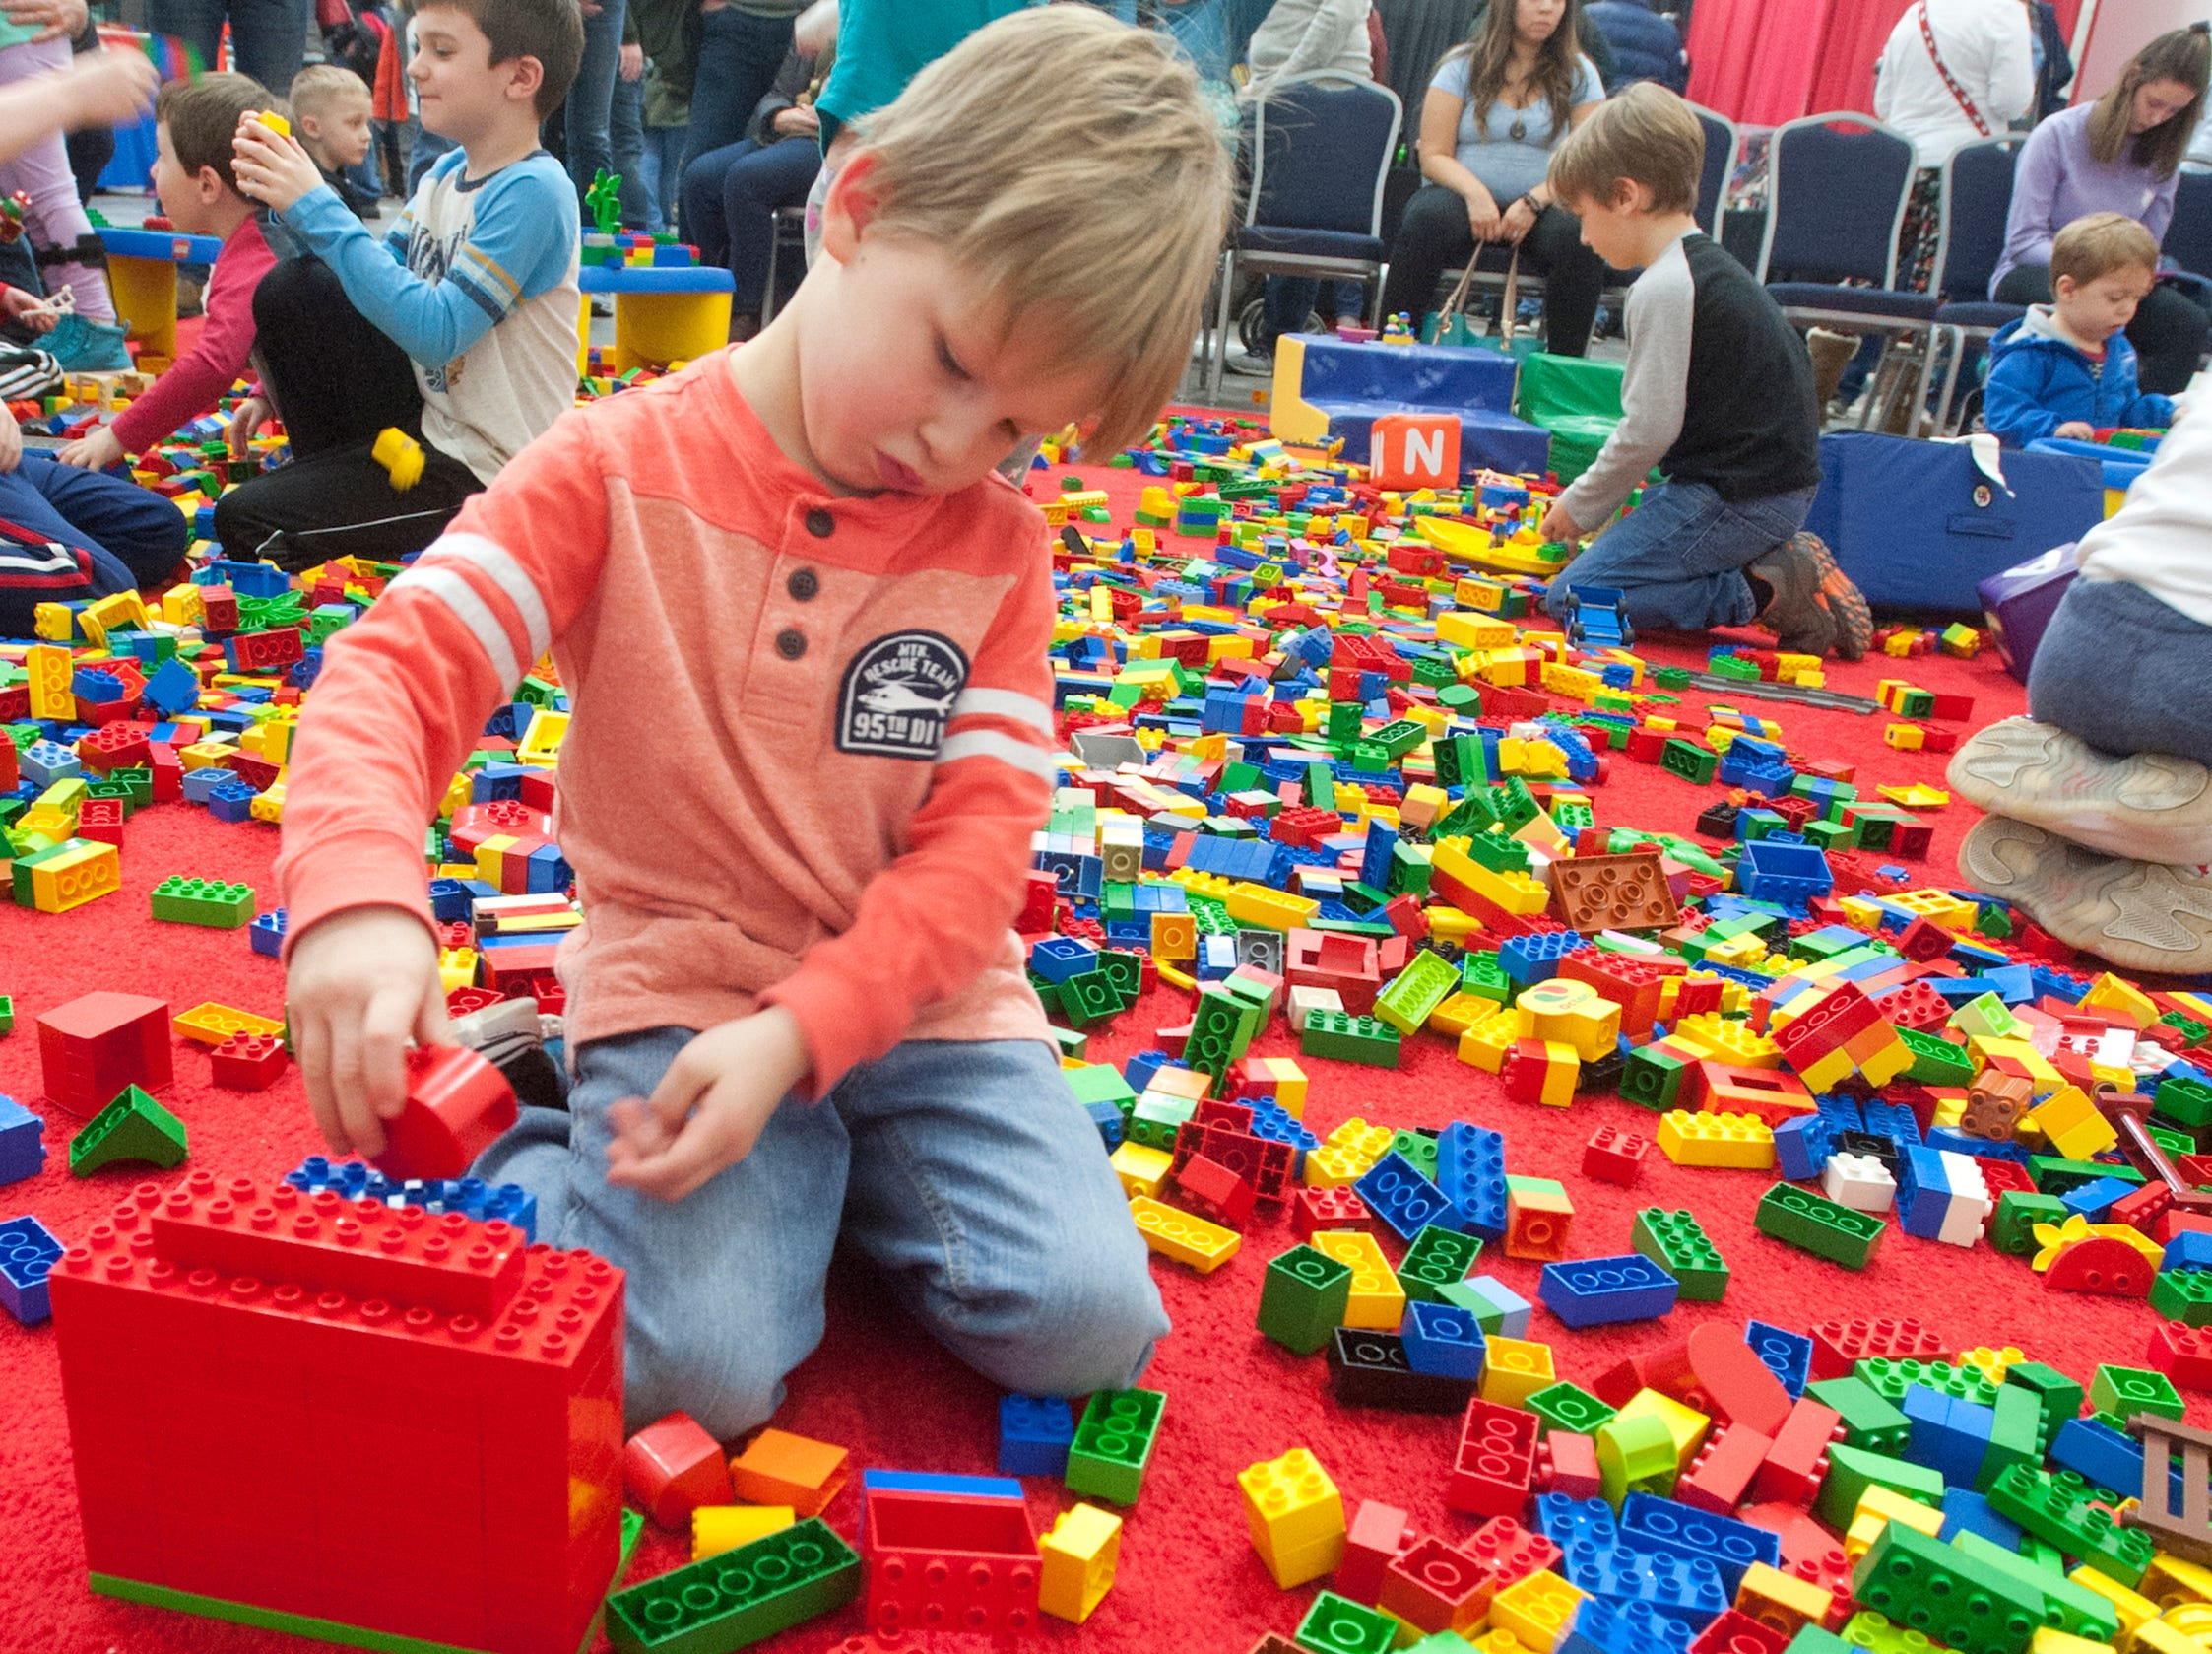 Grayson Bronk, age 4, of Jeffersonvile, plays with large Legos at the BrickUniverse Lego Fan Convention at the Kentucky International Convention Center in downtown Louisville.19 January 2019